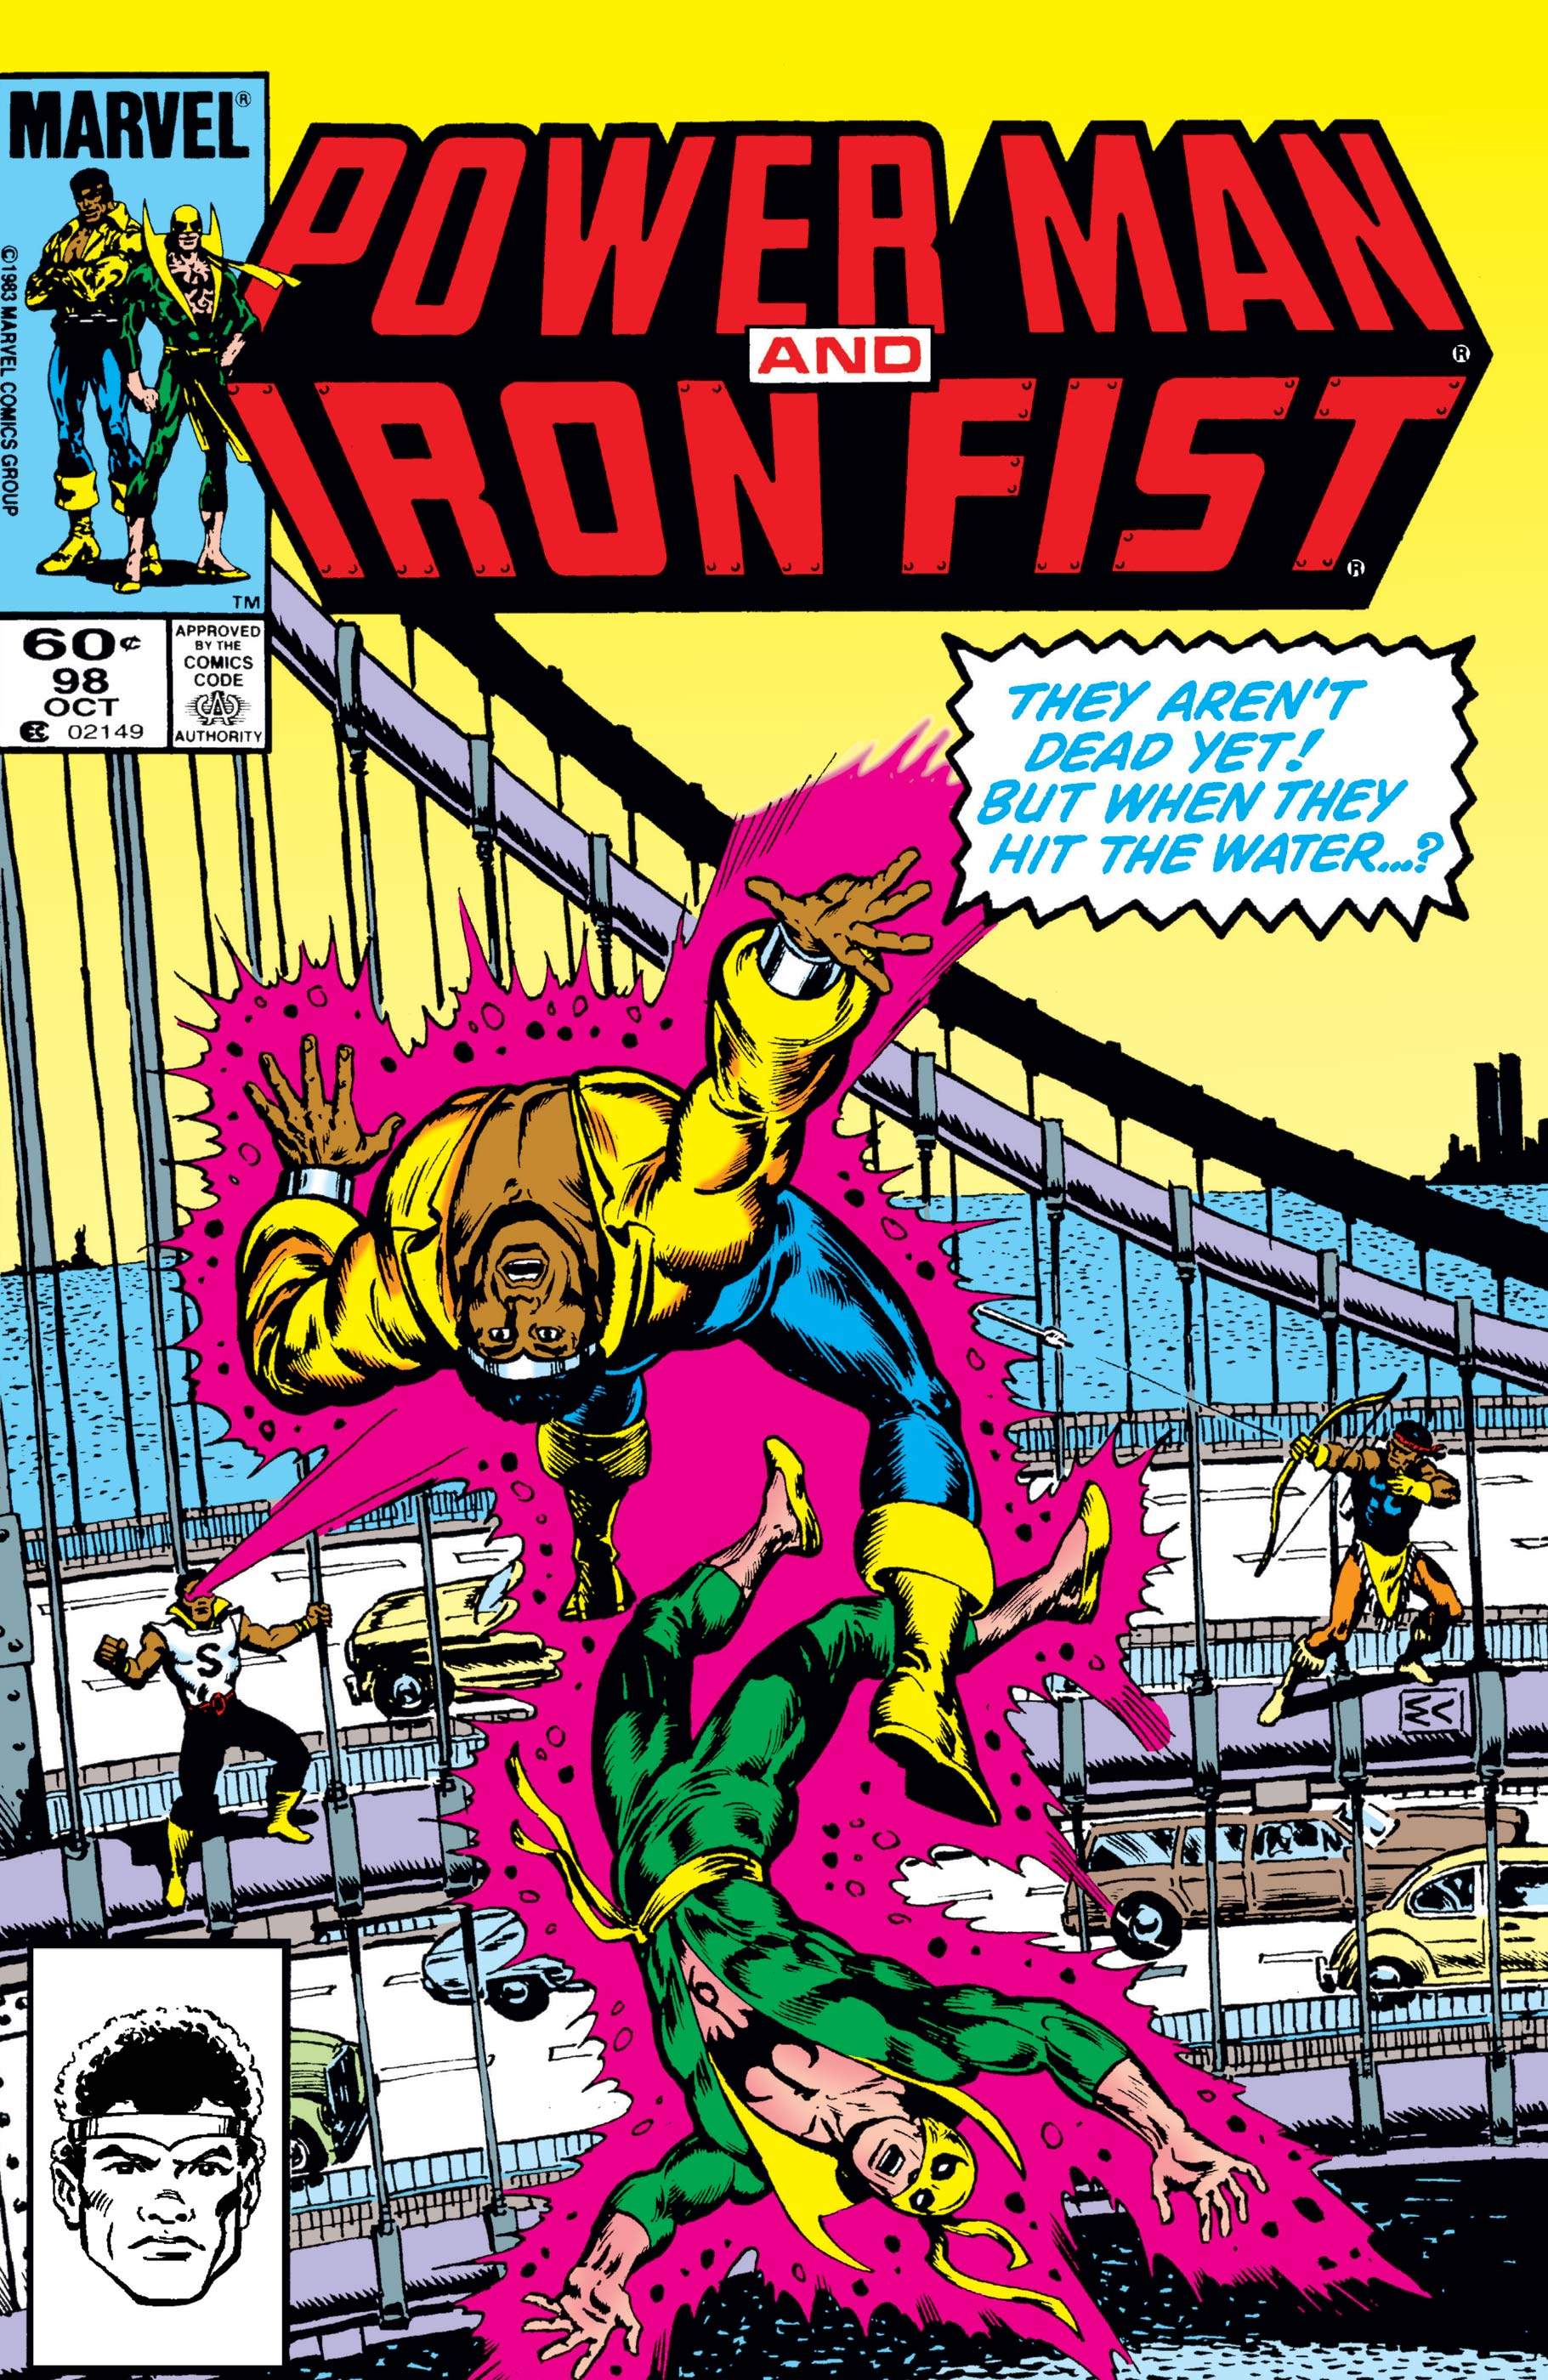 Power Man and Iron Fist (1978) #98